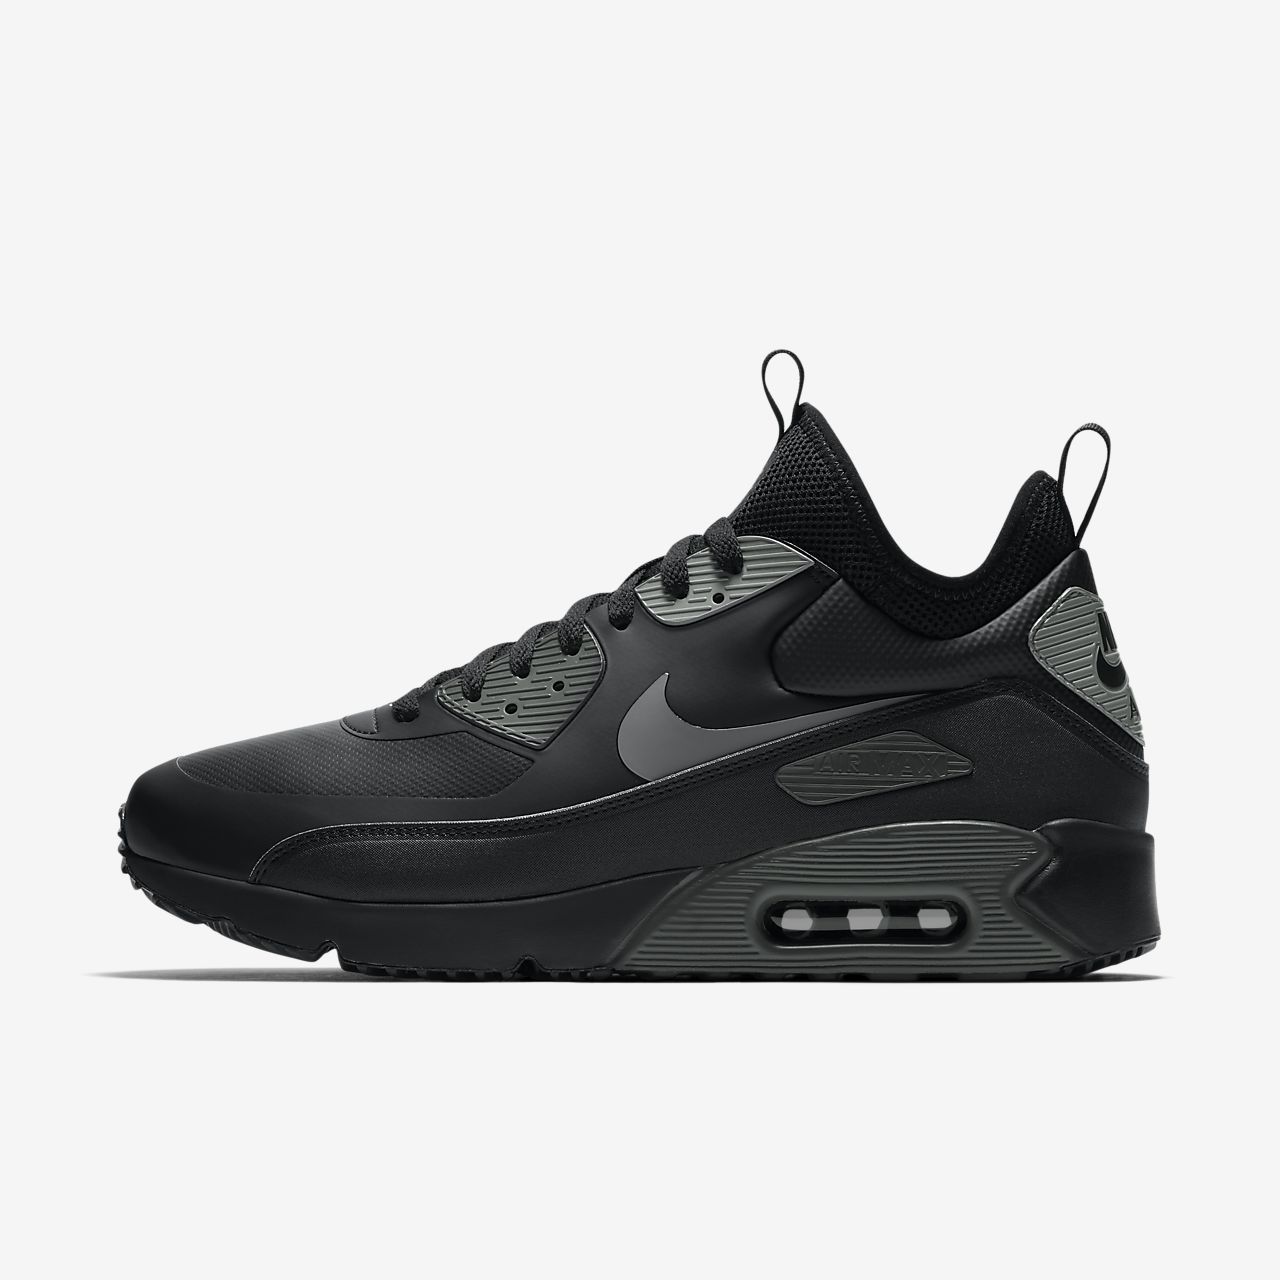 nike air max 90 mid winter. Black Bedroom Furniture Sets. Home Design Ideas